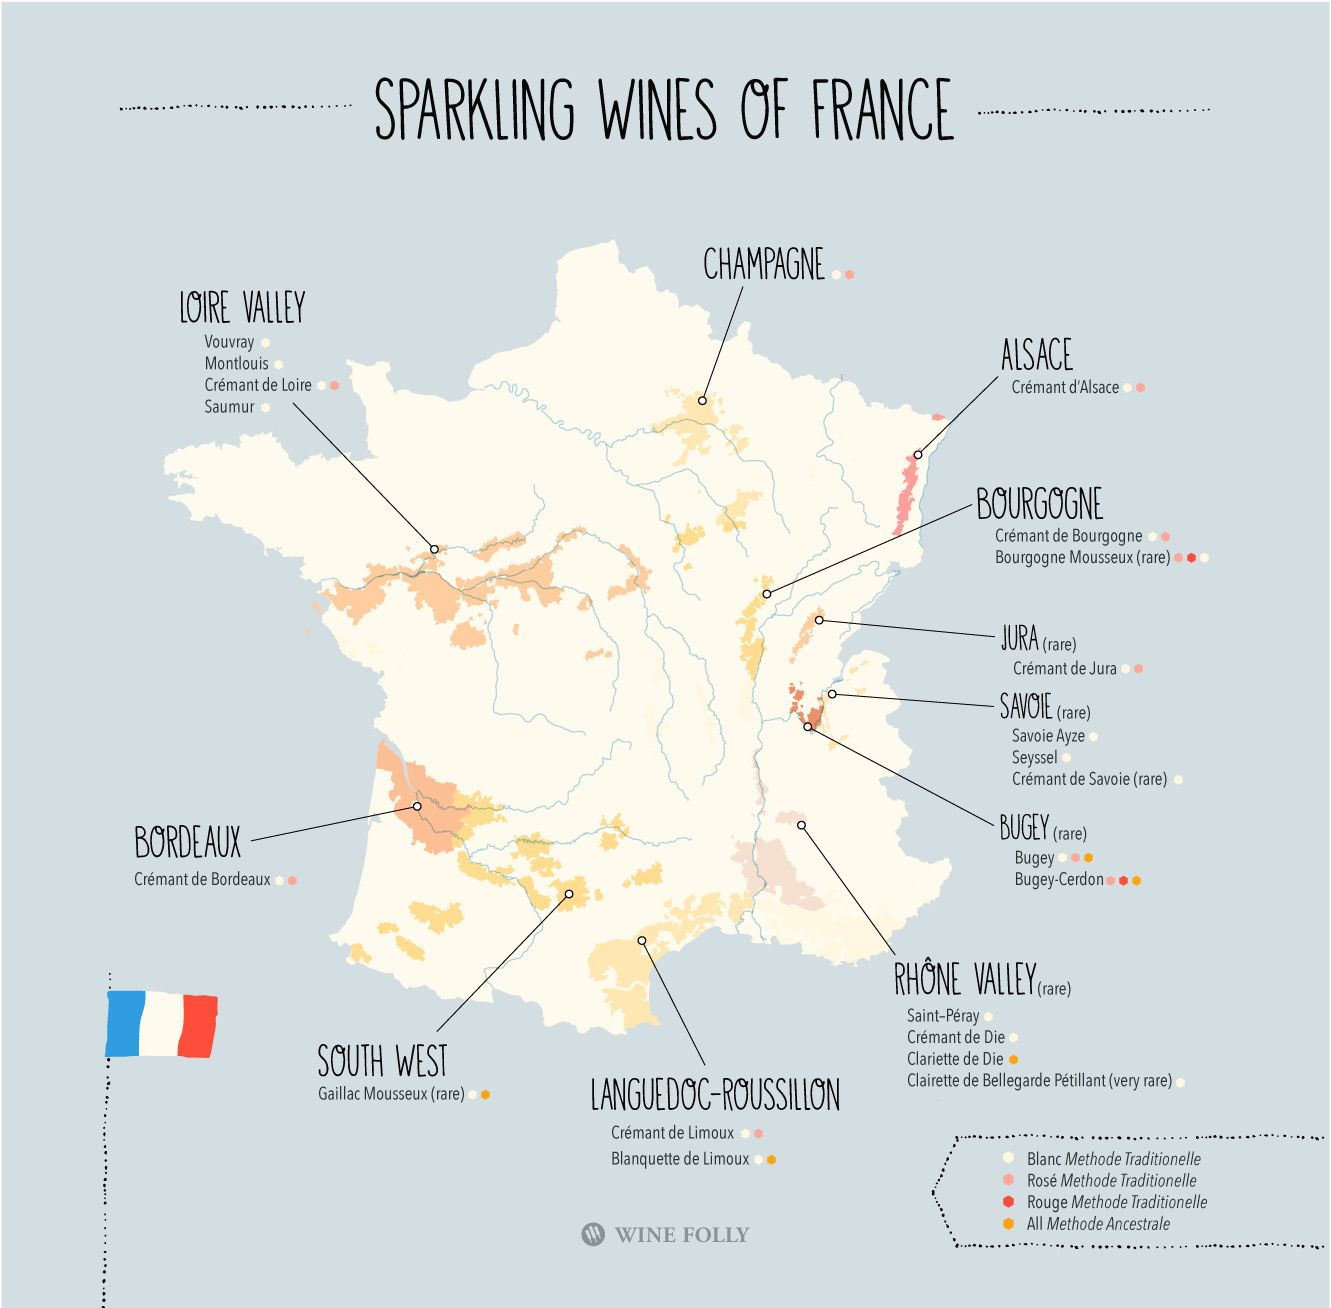 Beyond Champagne 23 Sparkling Wines of France Map Sparkling wine